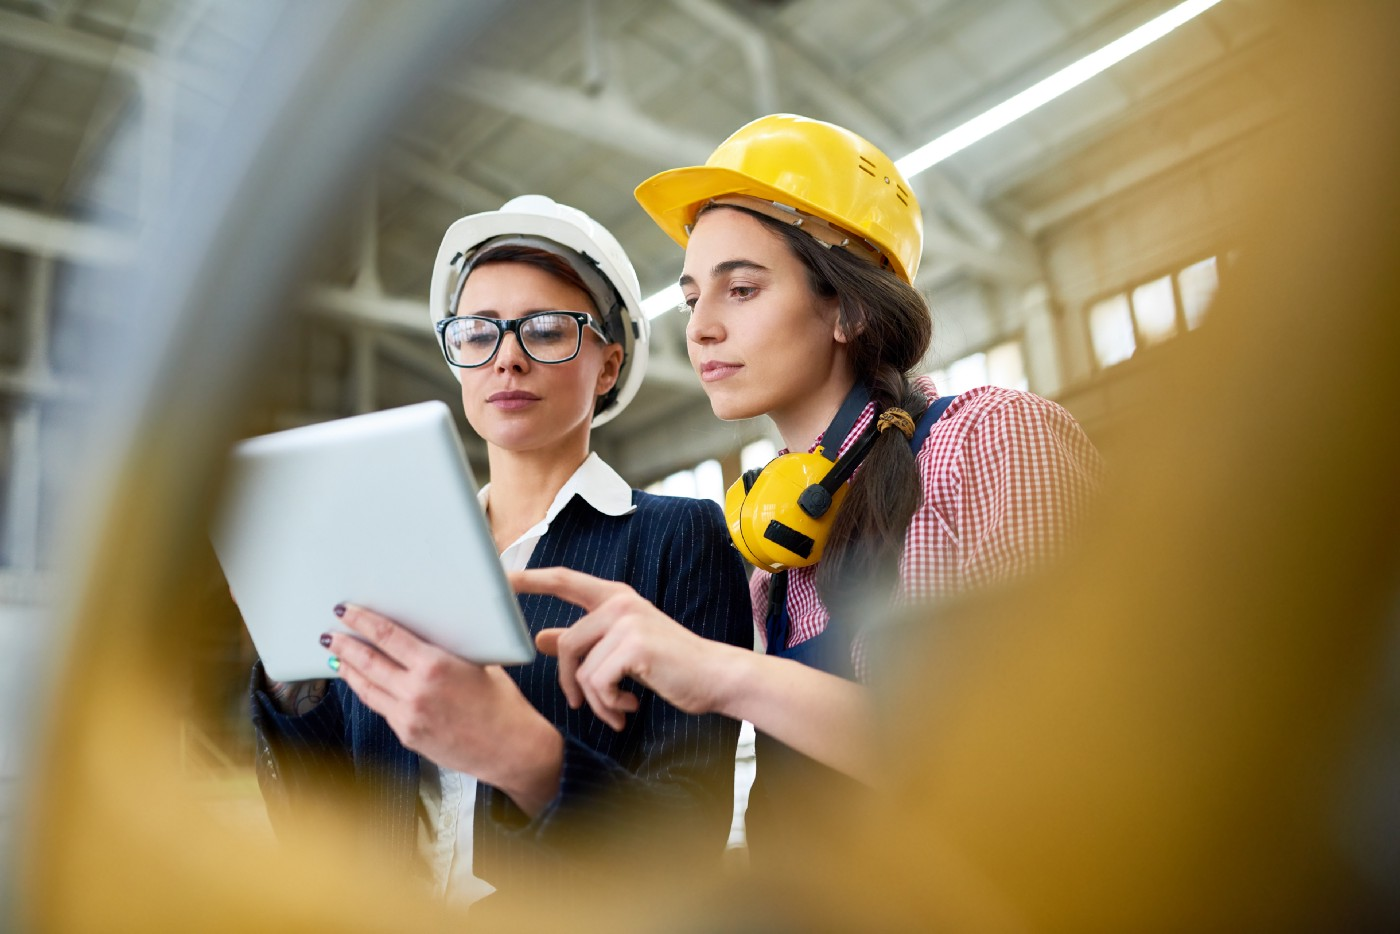 Two women in hard hats looking at a tablet in a warehouse setting